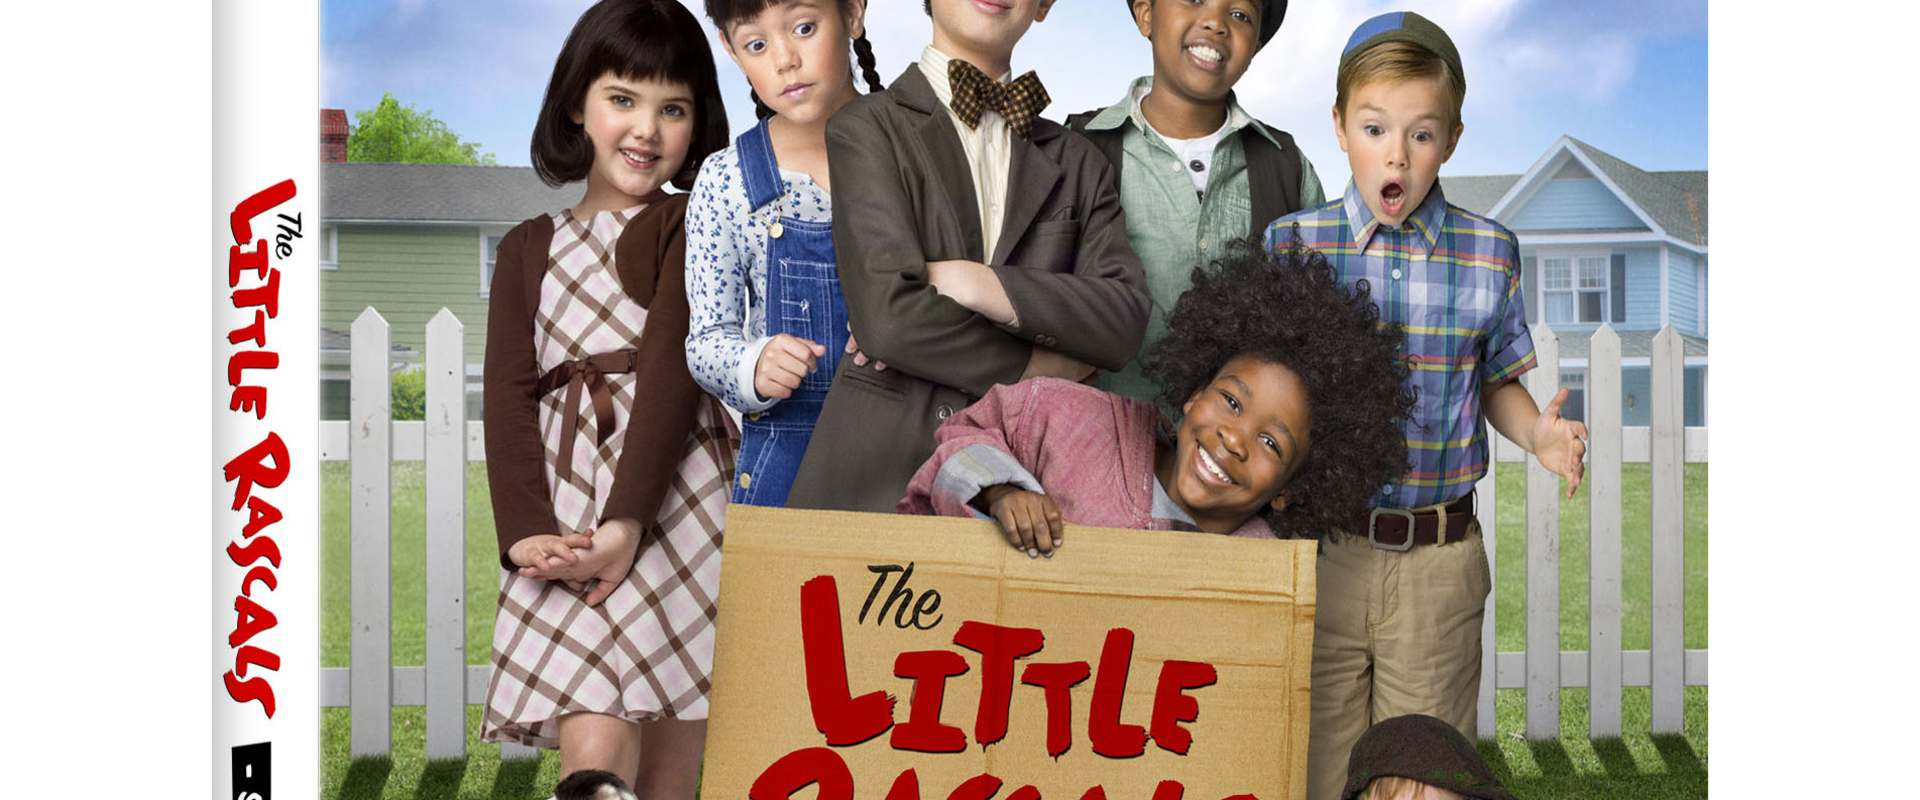 The Little Rascals Save the Day background 2